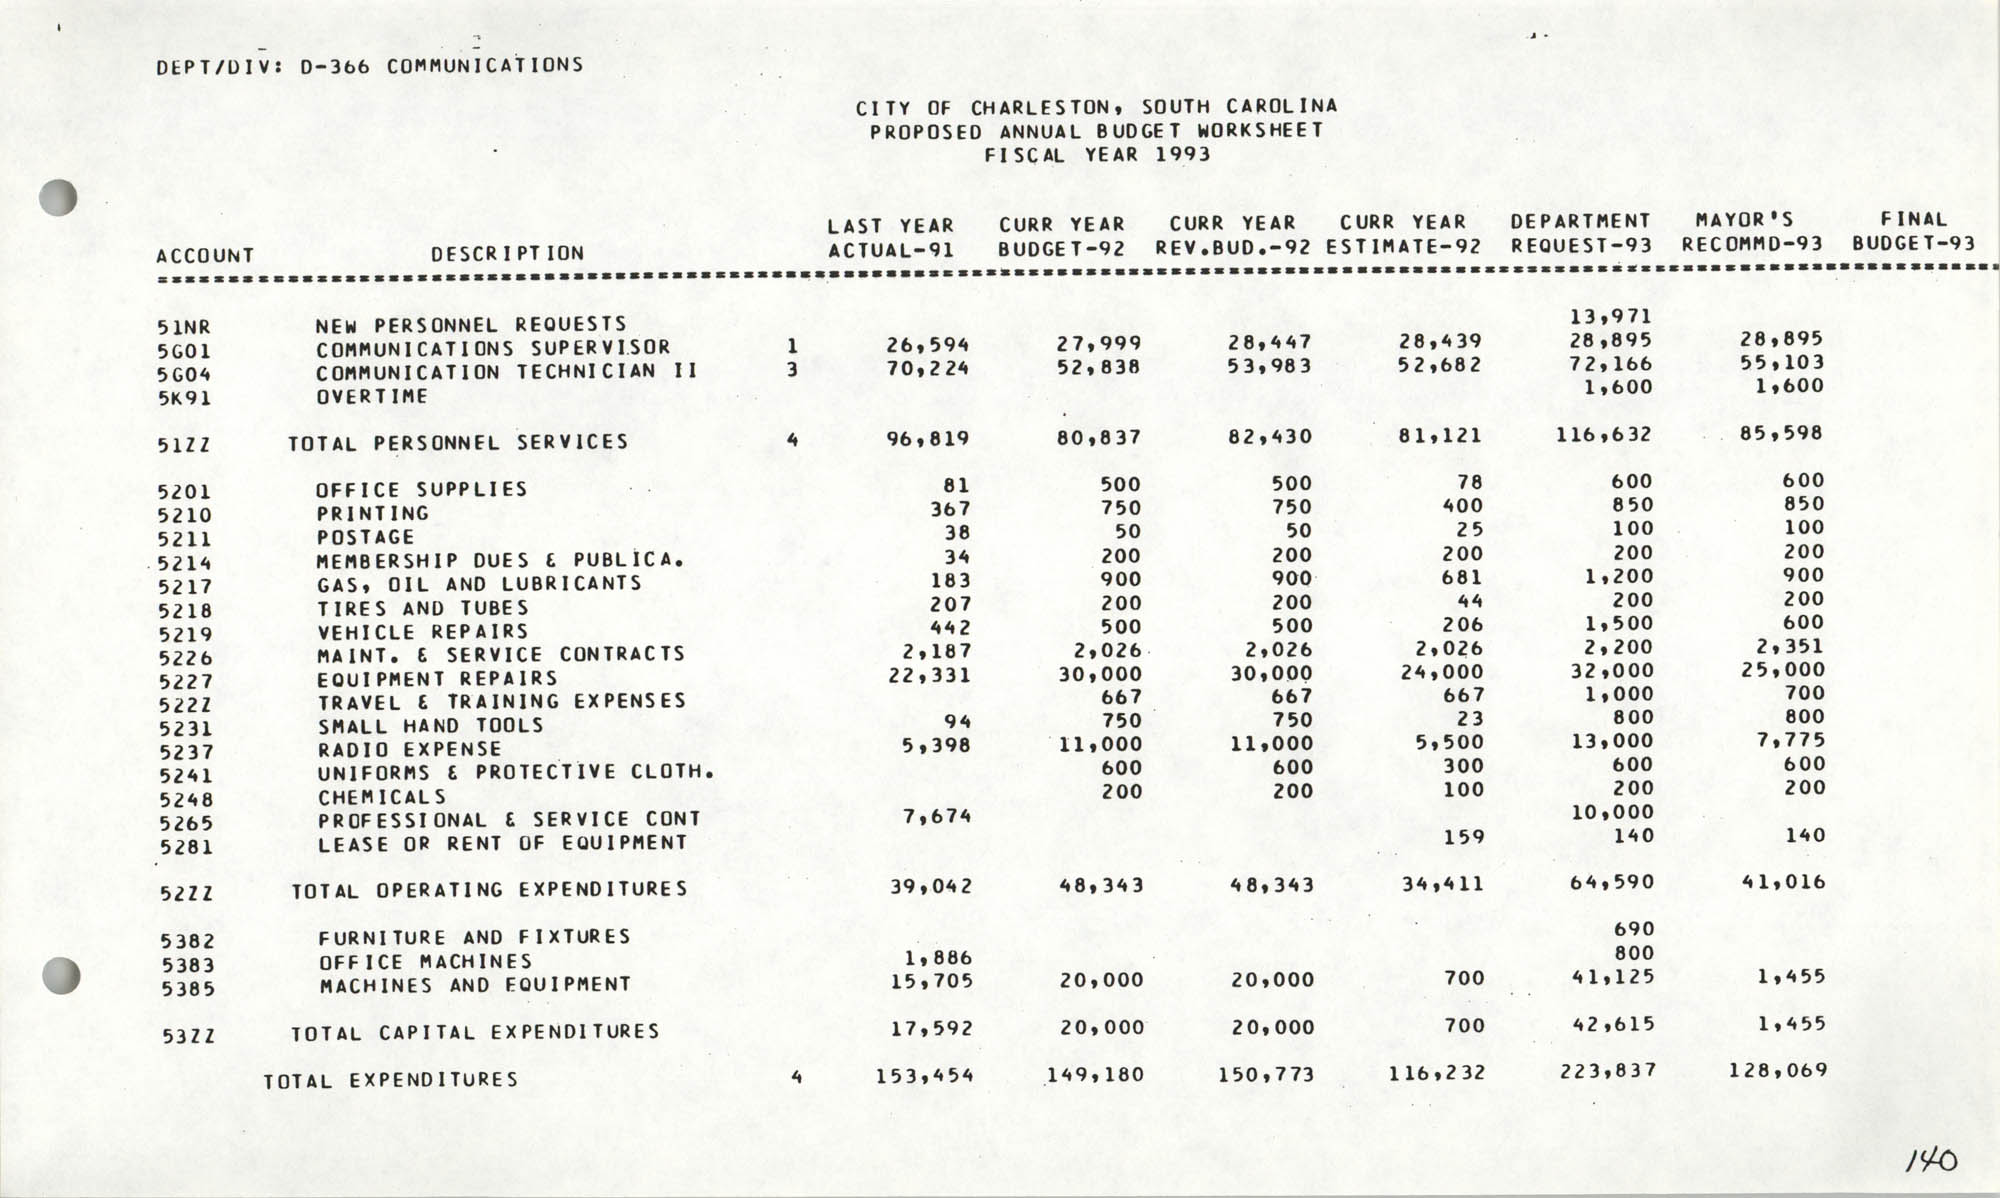 The City Council of Charleston, South Carolina, 1993 Budget, Page 140